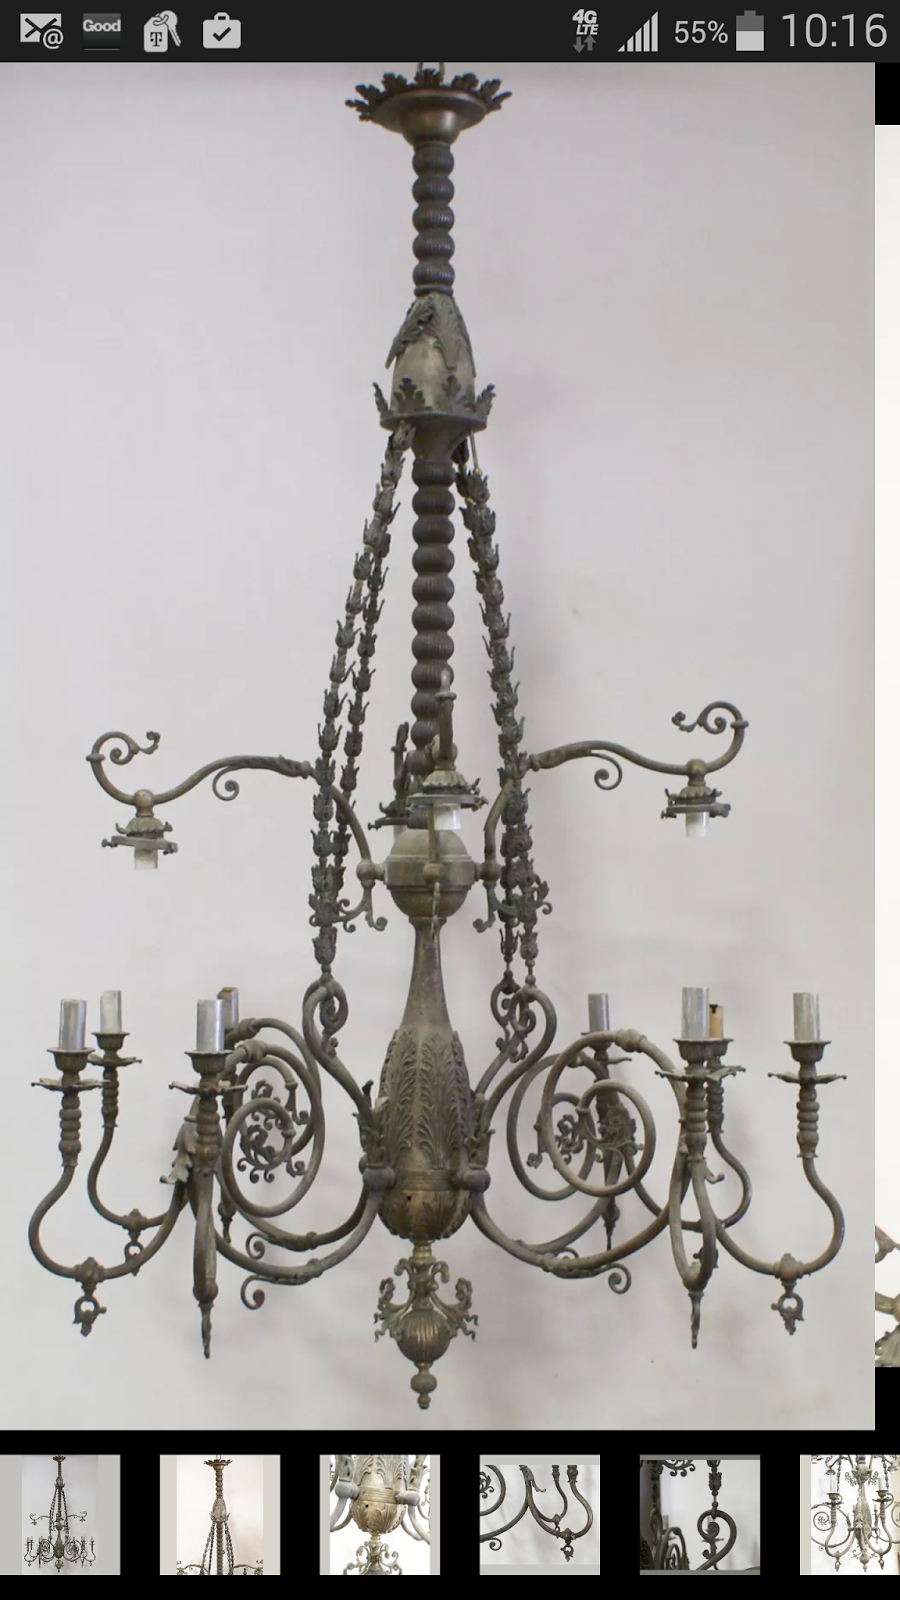 Fabulous Looking at what they did have the chandelier was similar to what the pany was making at the time